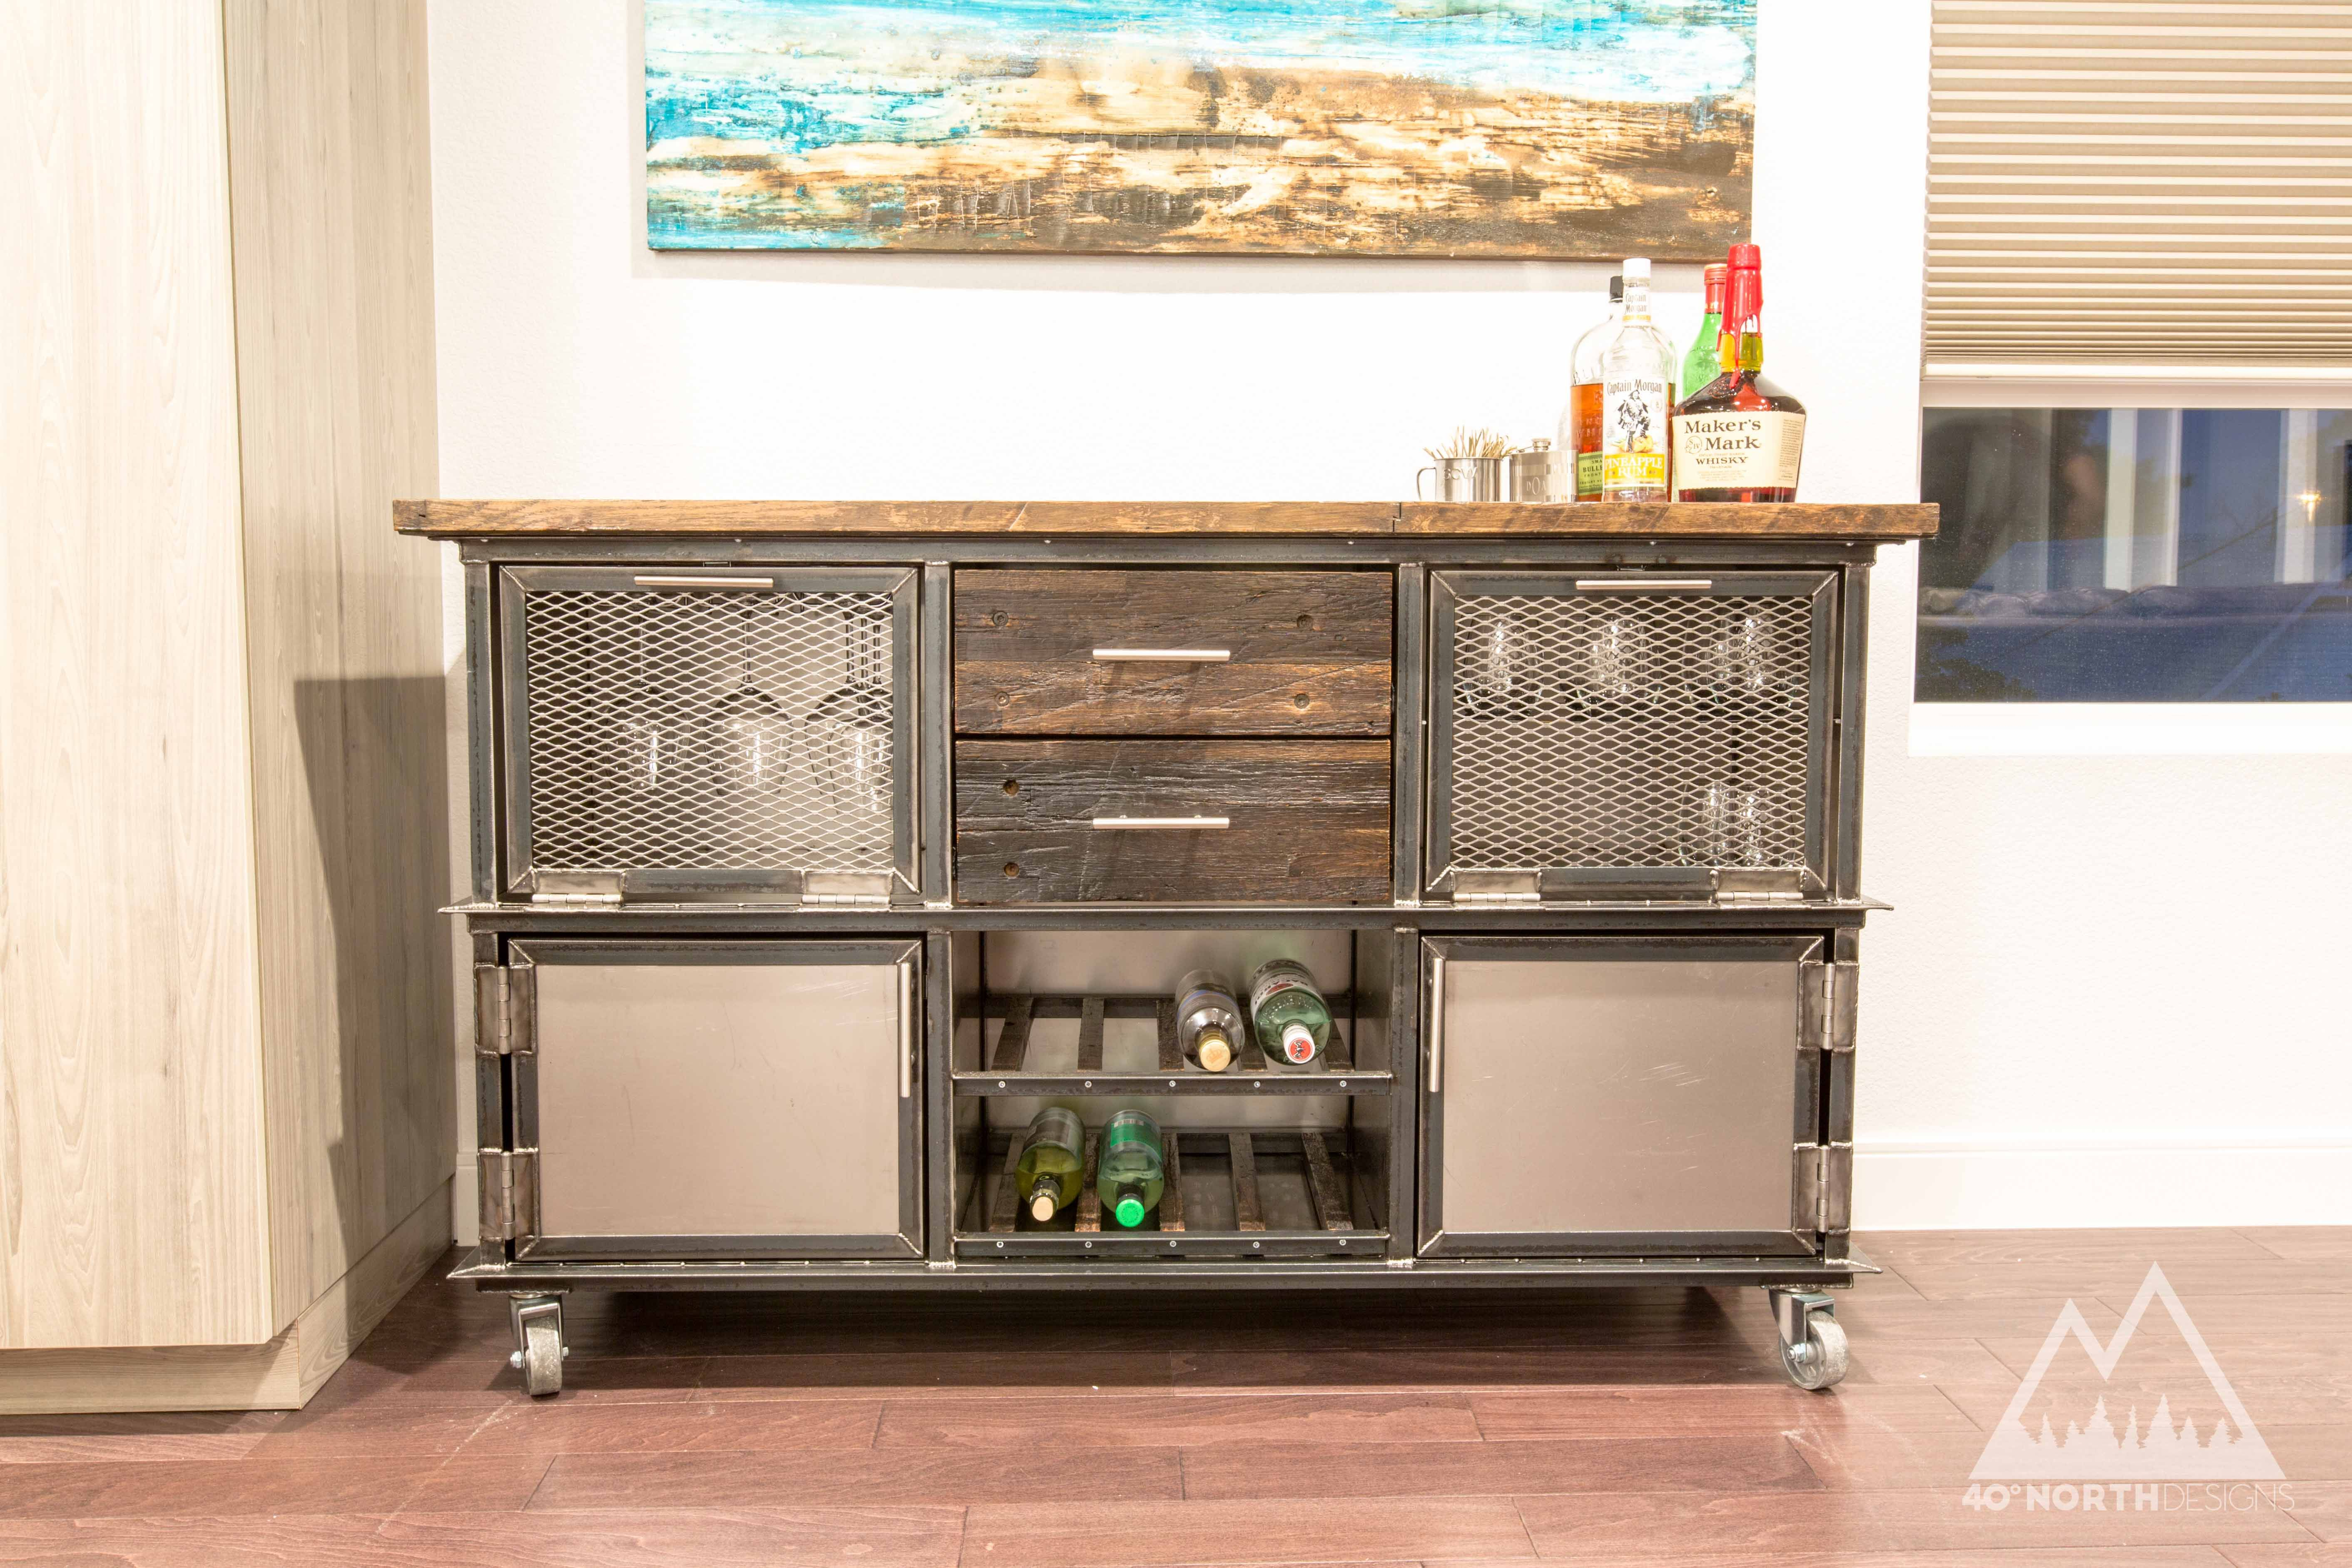 Buy Hand Crafted Modern Rustic Industrial Reclaimed Bar Cart Storage Unit Made To Order From 40 North Designs Custommade Com